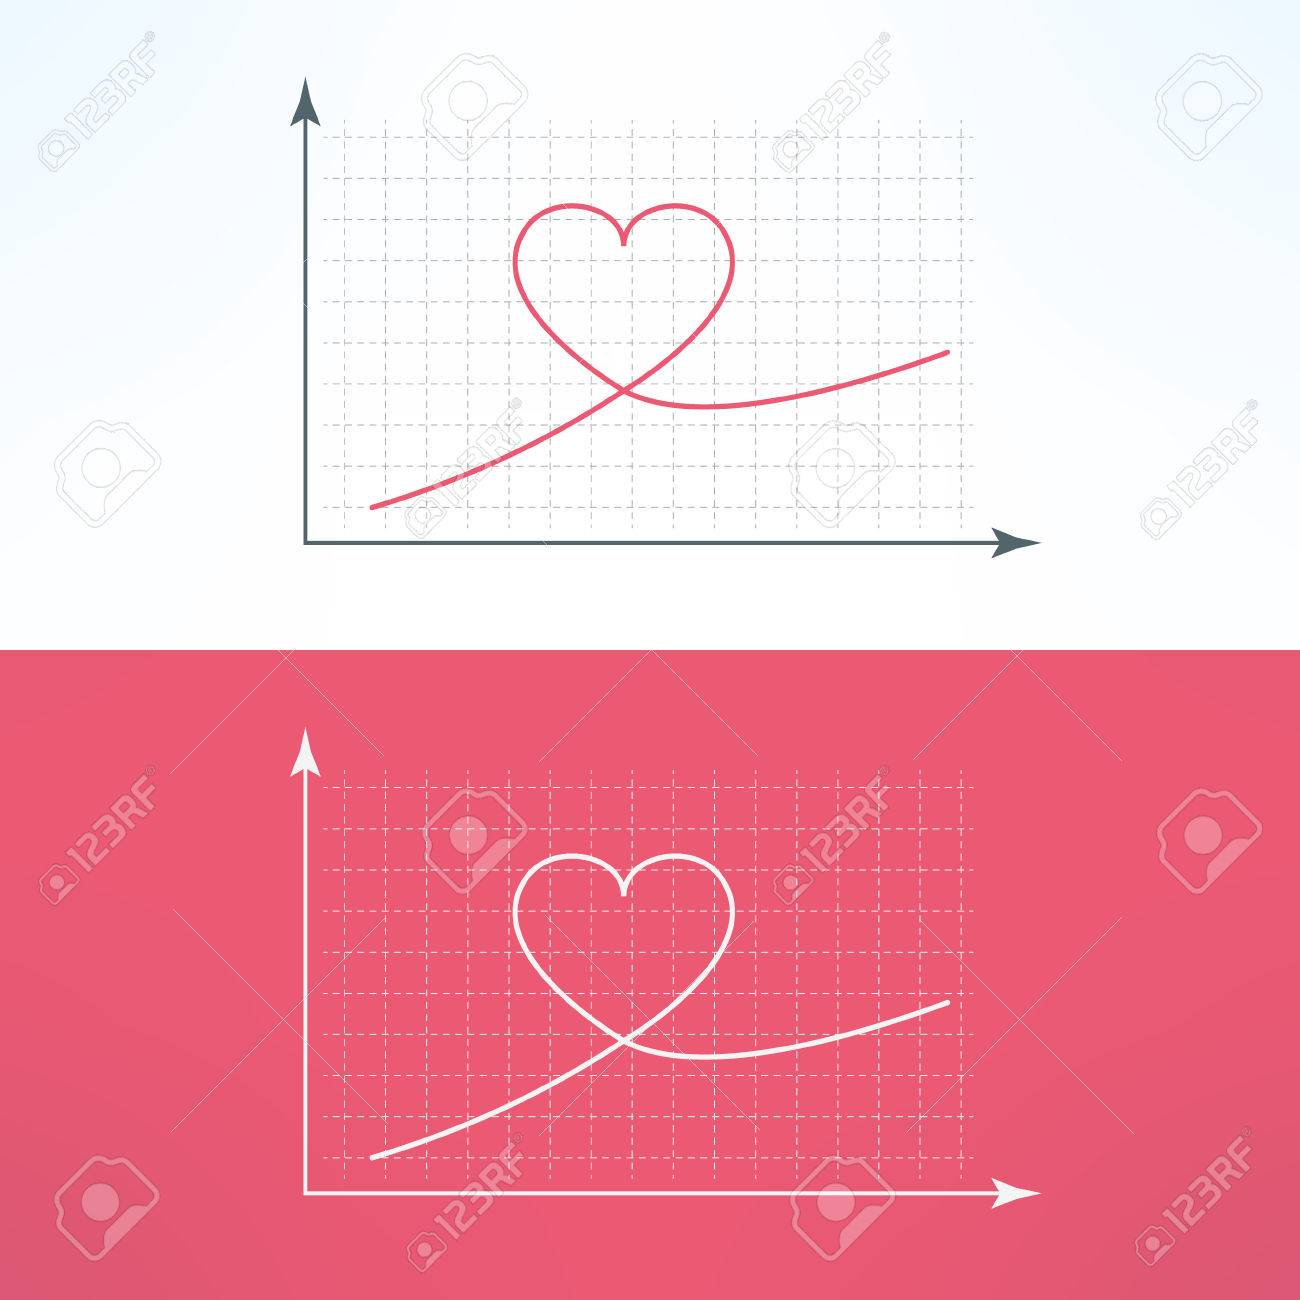 Vector graphic chart with heart icon loving and liking raise vector vector graphic chart with heart icon loving and liking raise diagram graph ccuart Gallery